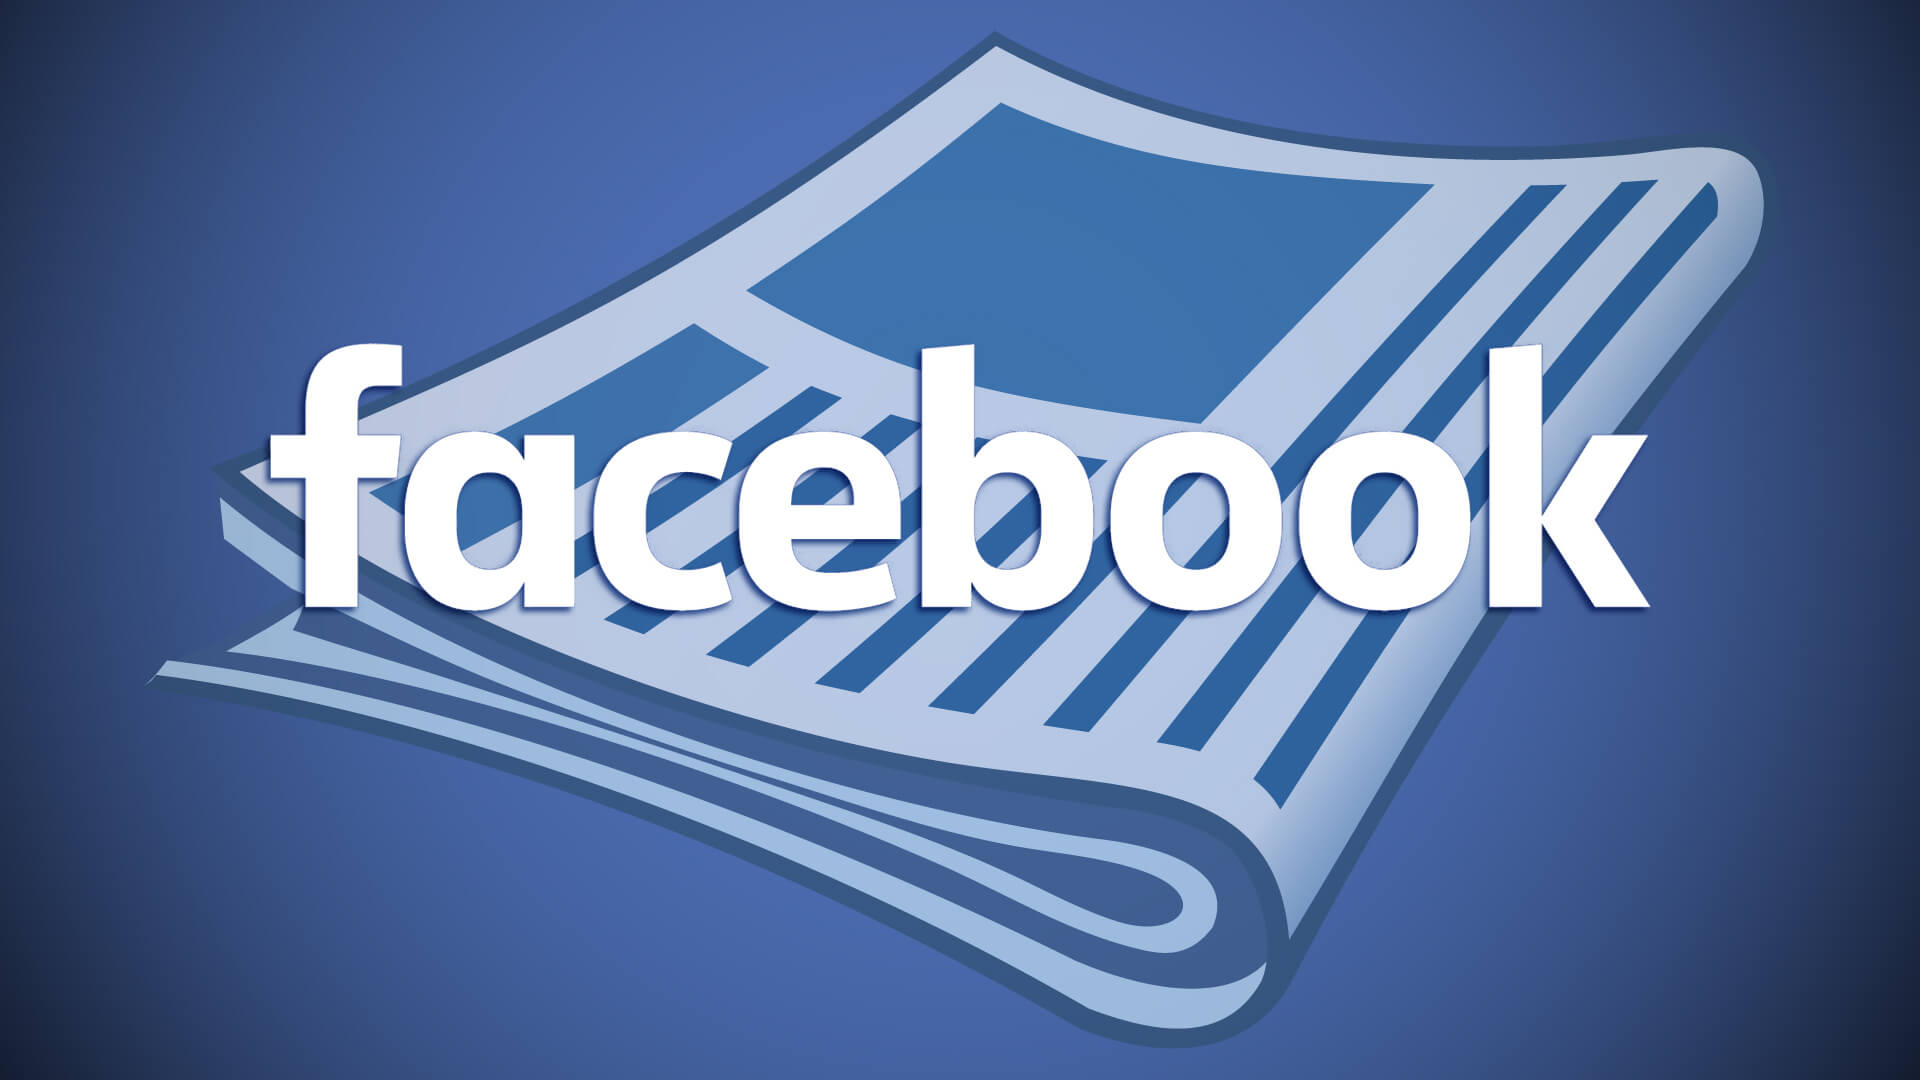 facebook-news-articles2-ss-1920.jpg